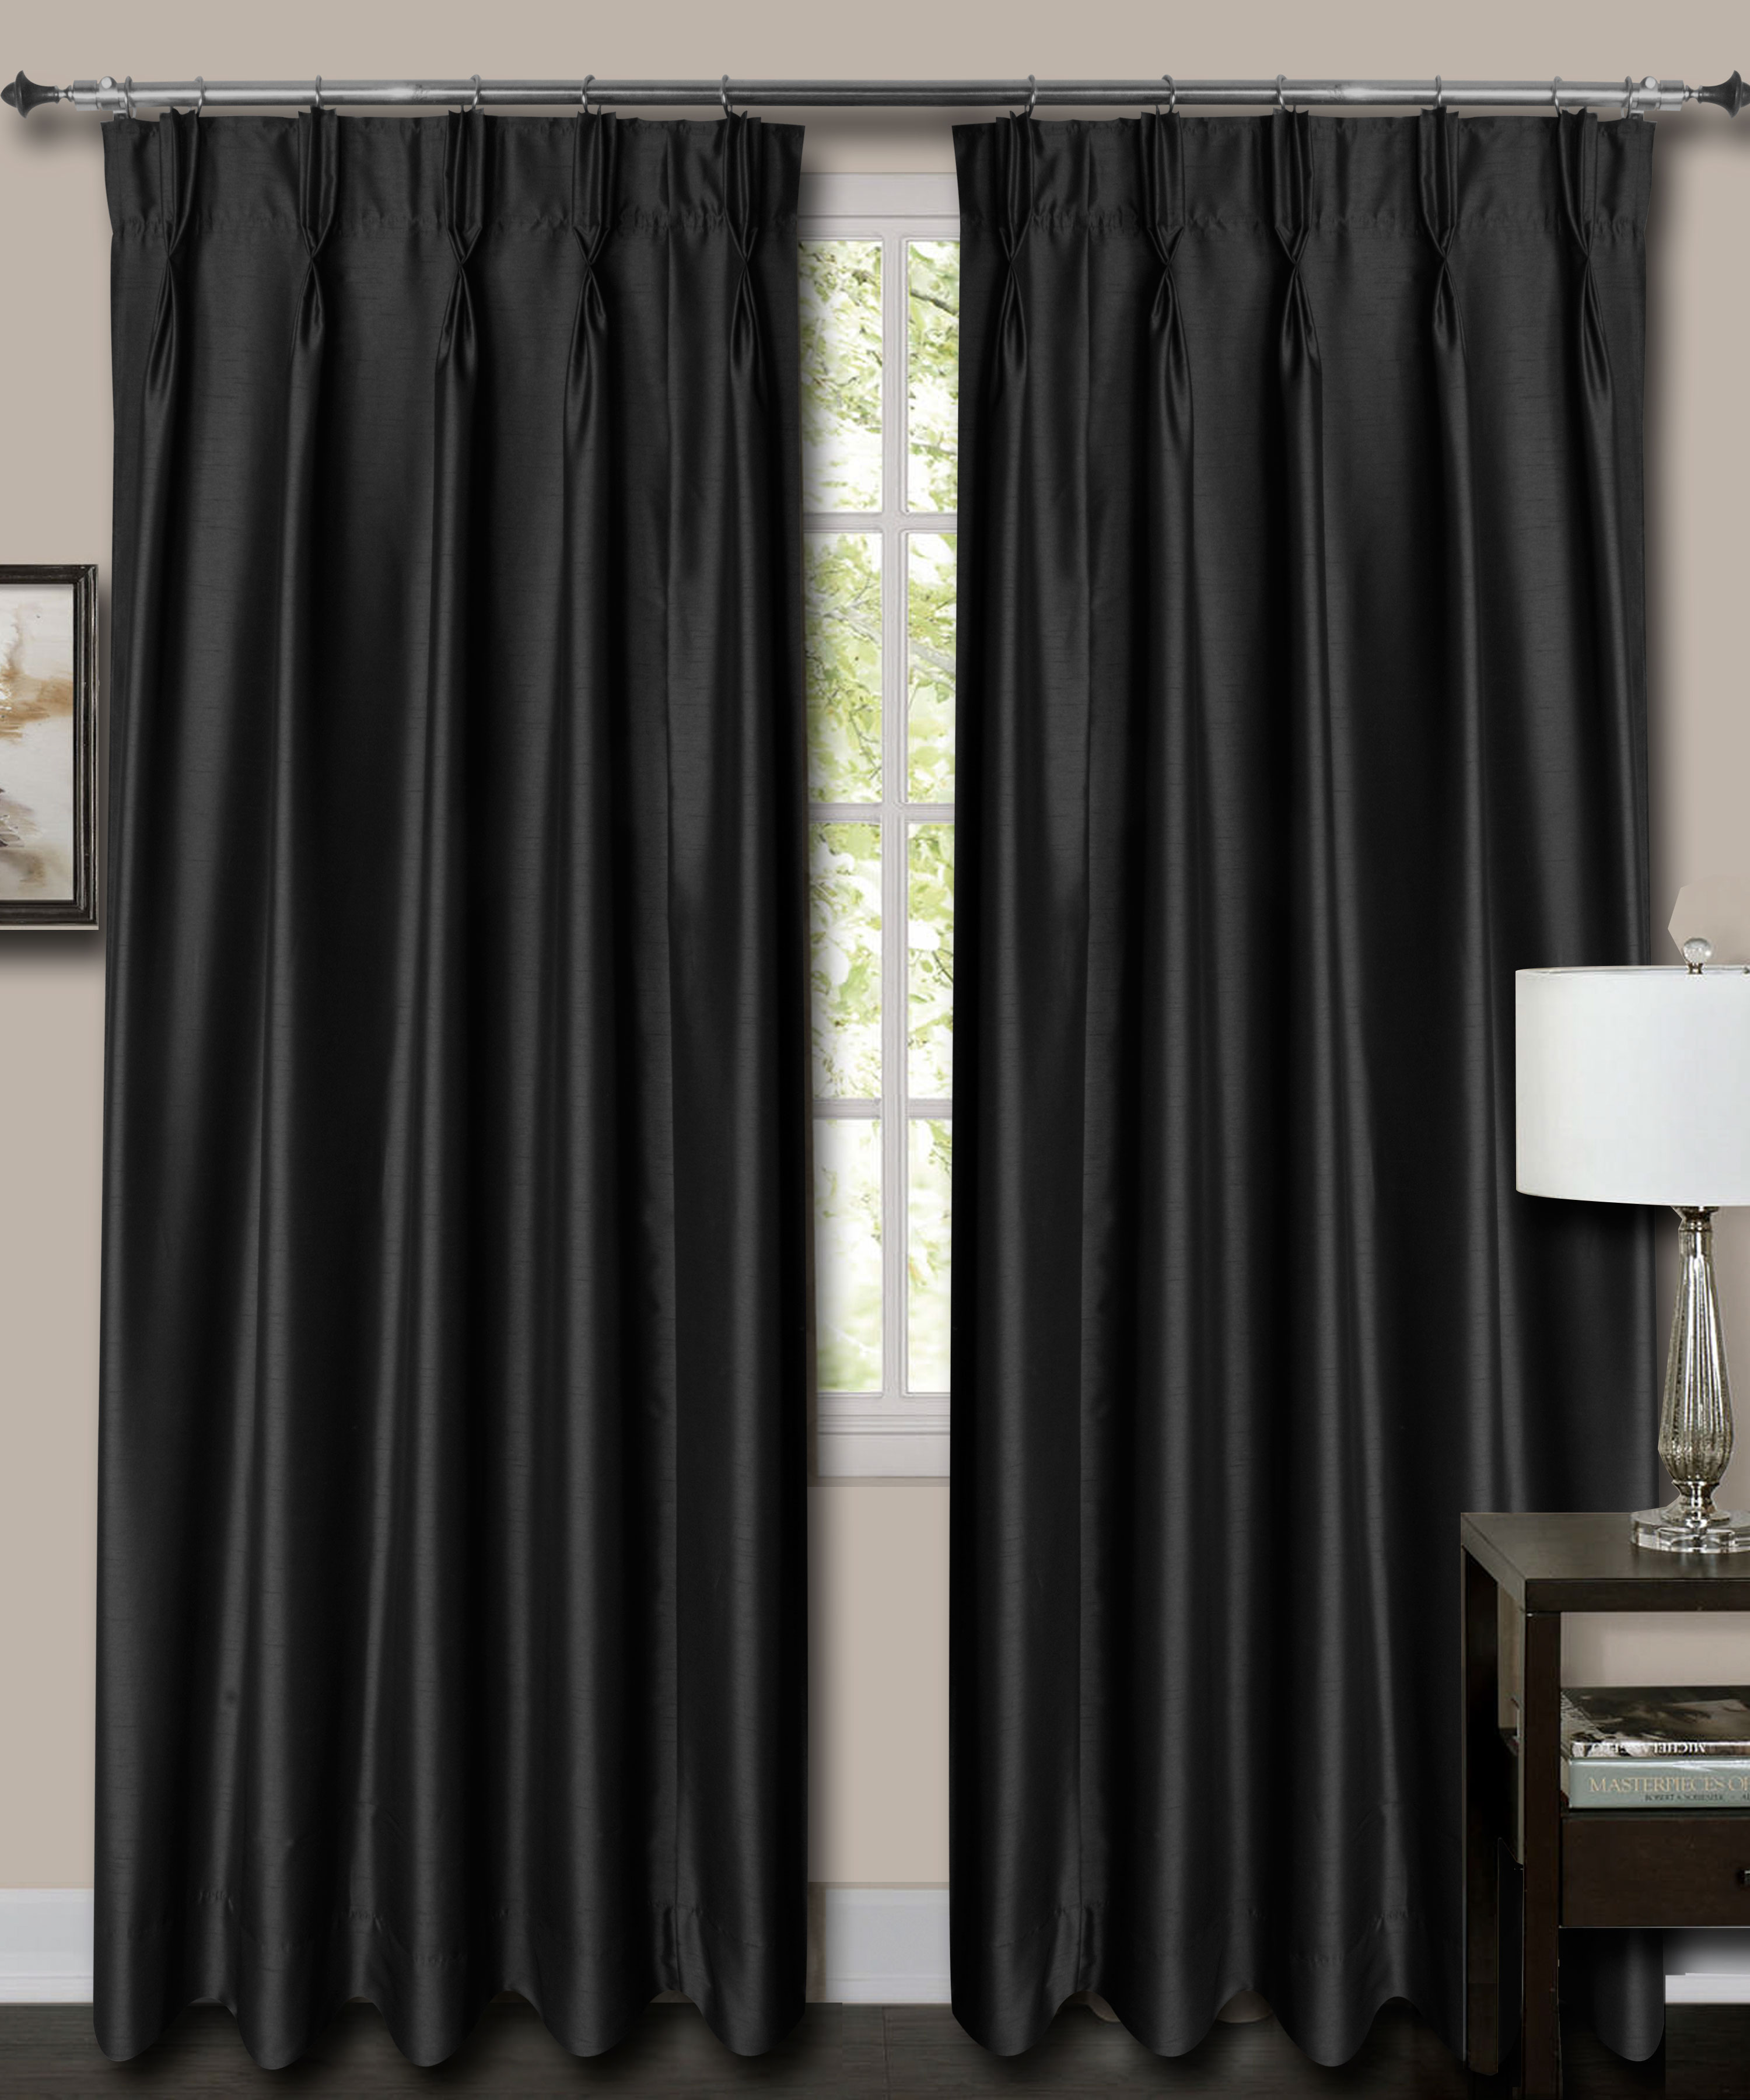 "French Pleat Top Black Faux Silk Dupioni Curtains. (24"" Wide,4 Feet Long,Thick Lining)"